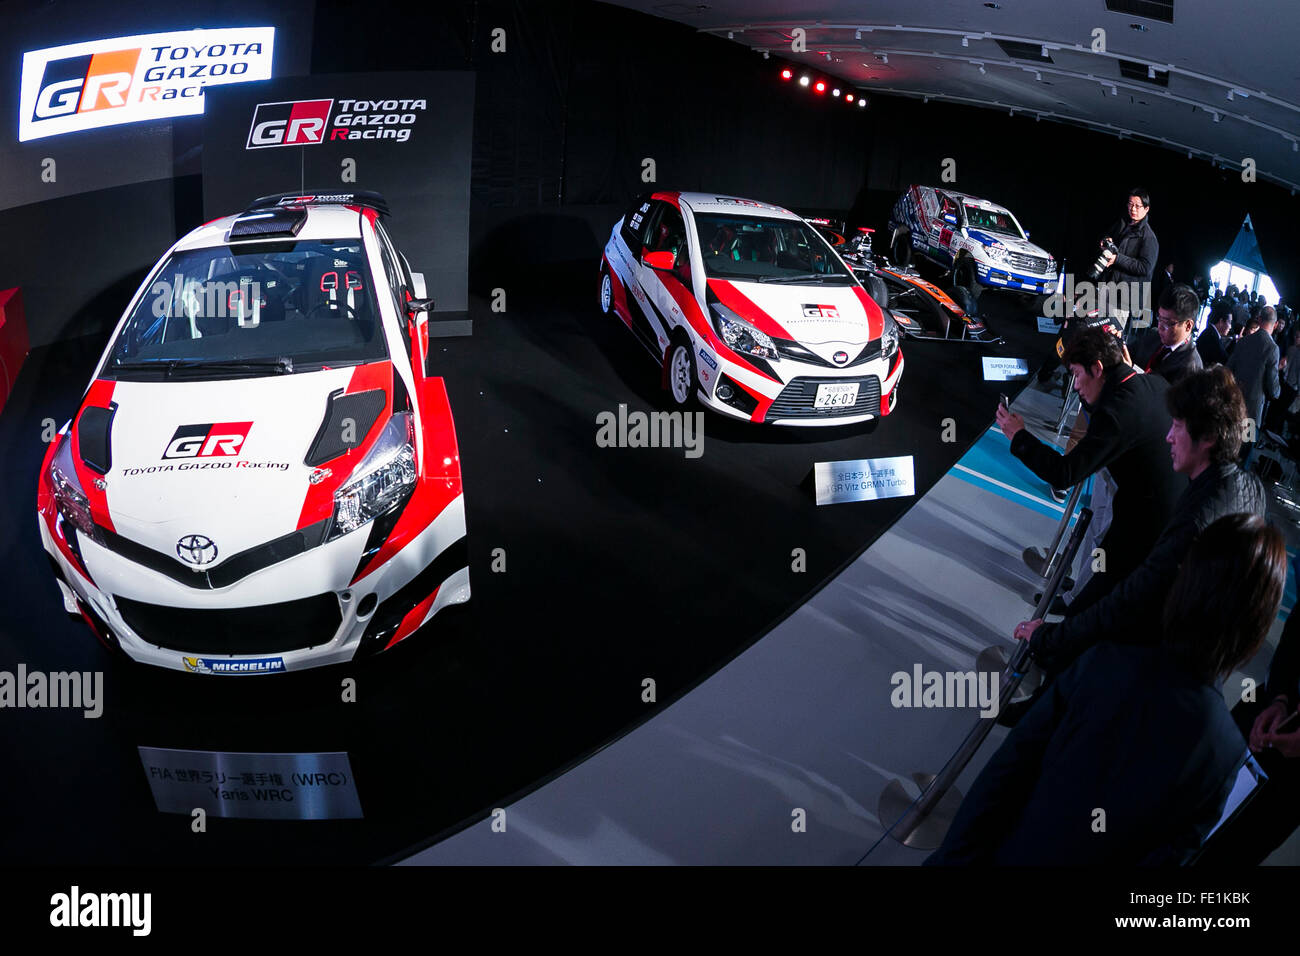 Toyota Race Cars Stock Photos & Toyota Race Cars Stock Images - Alamy